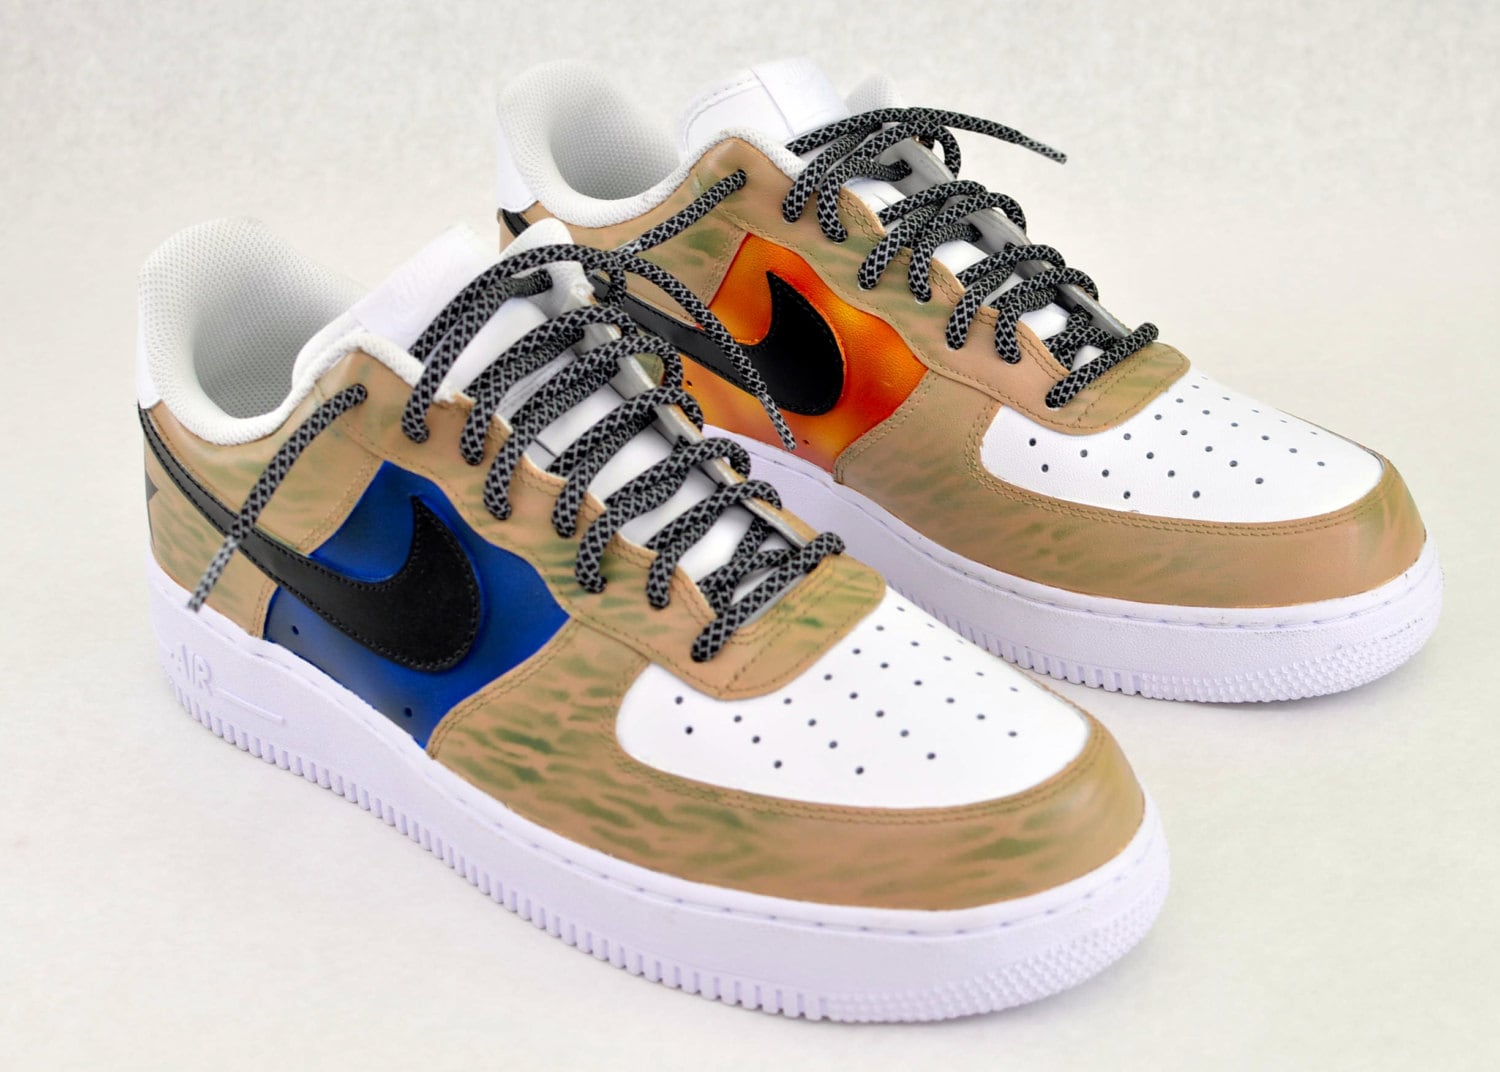 reputable site 70774 fc6ed Nike Air Force 1 Sneakers Army   Marines Theme de peintes à   Etsy